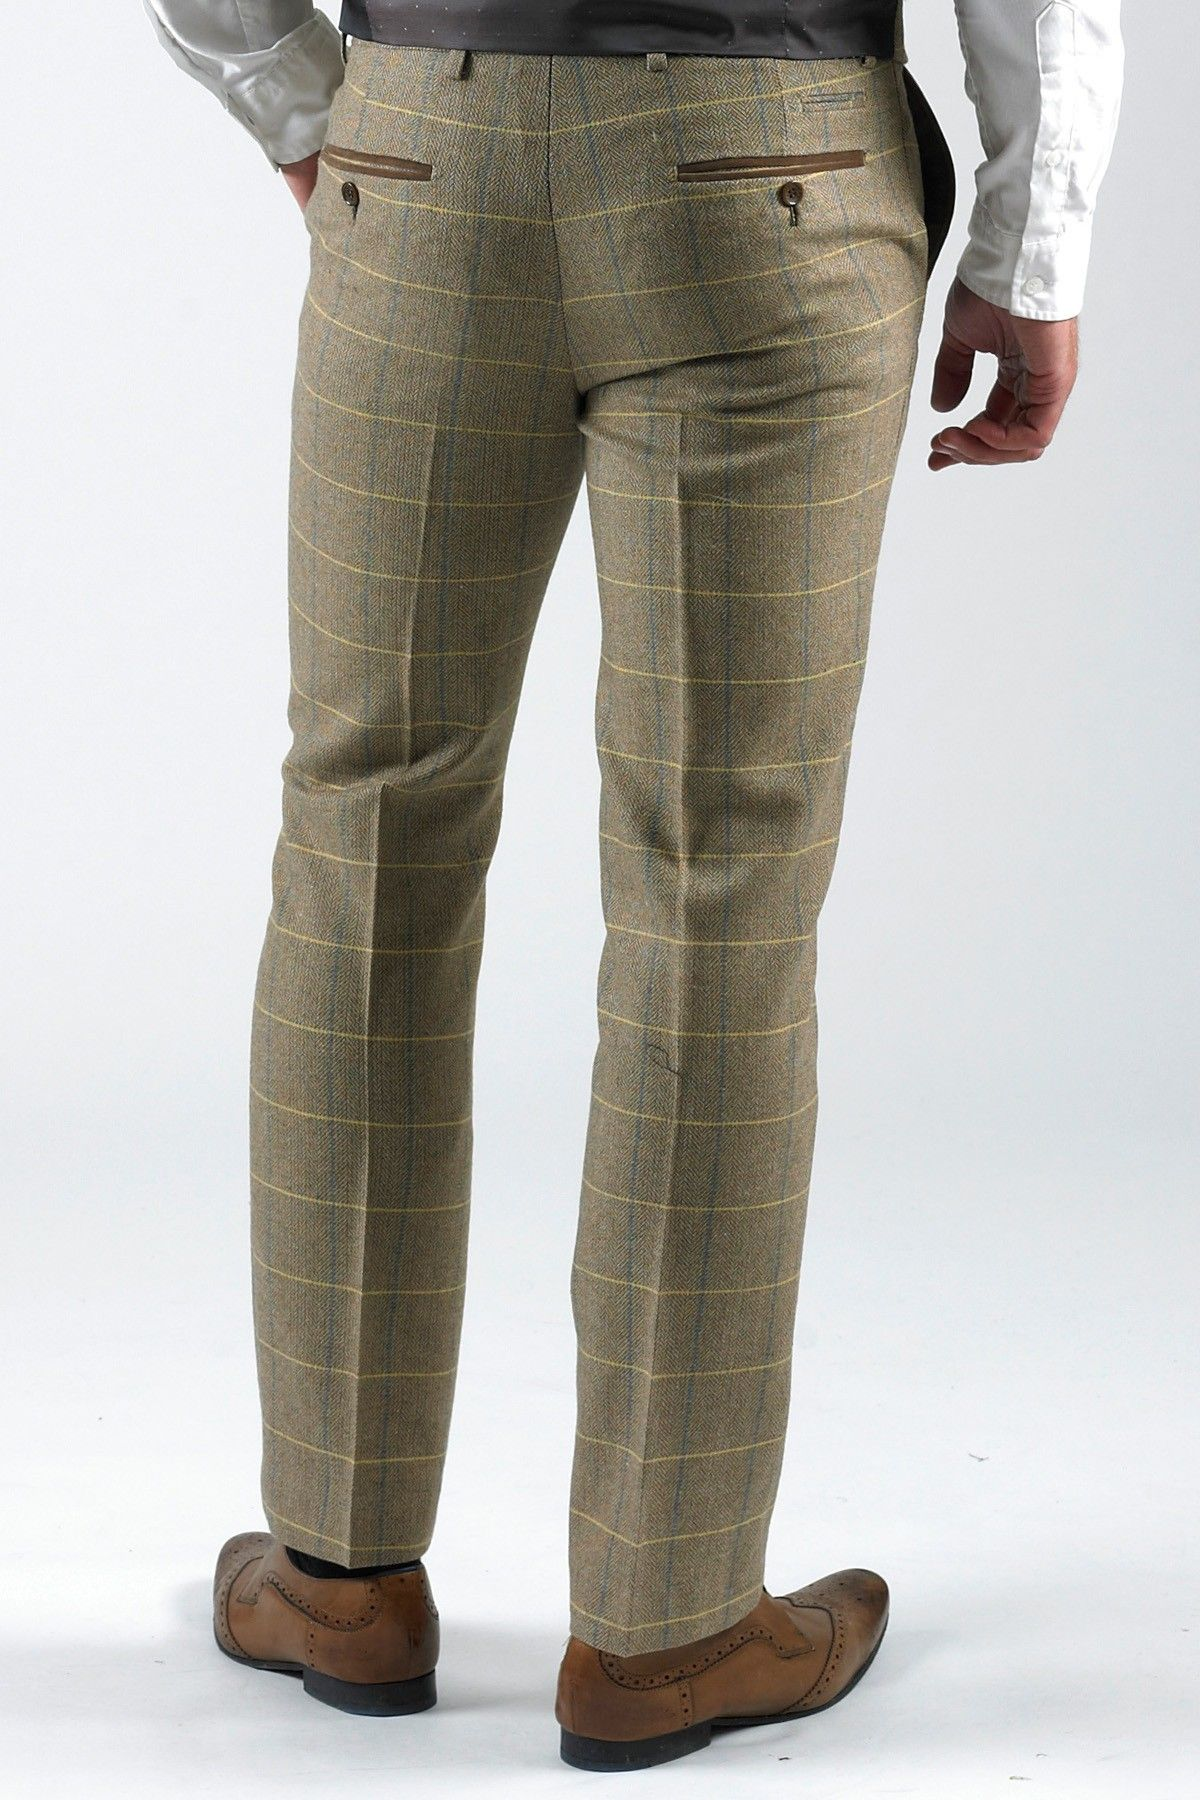 eb82efcfcb2f 30 Waist Trousers | Smart Mens | Tweed | Herringbone | Vintage | Check |  Trousers | Marc Darcy Marc Darcy Menswear